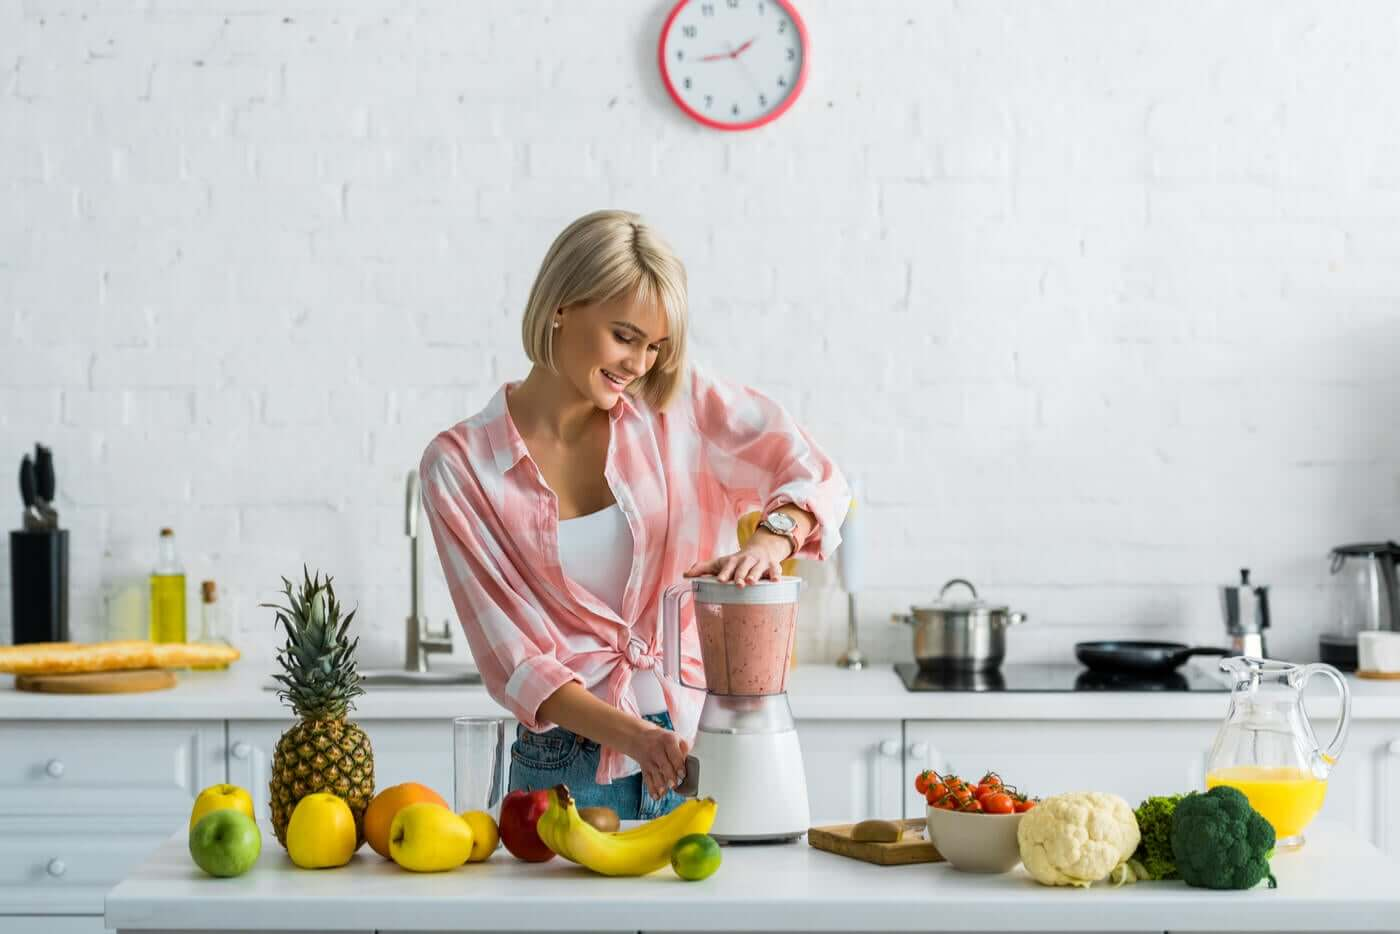 A woman preparing fruit smoothies in her kitchen.